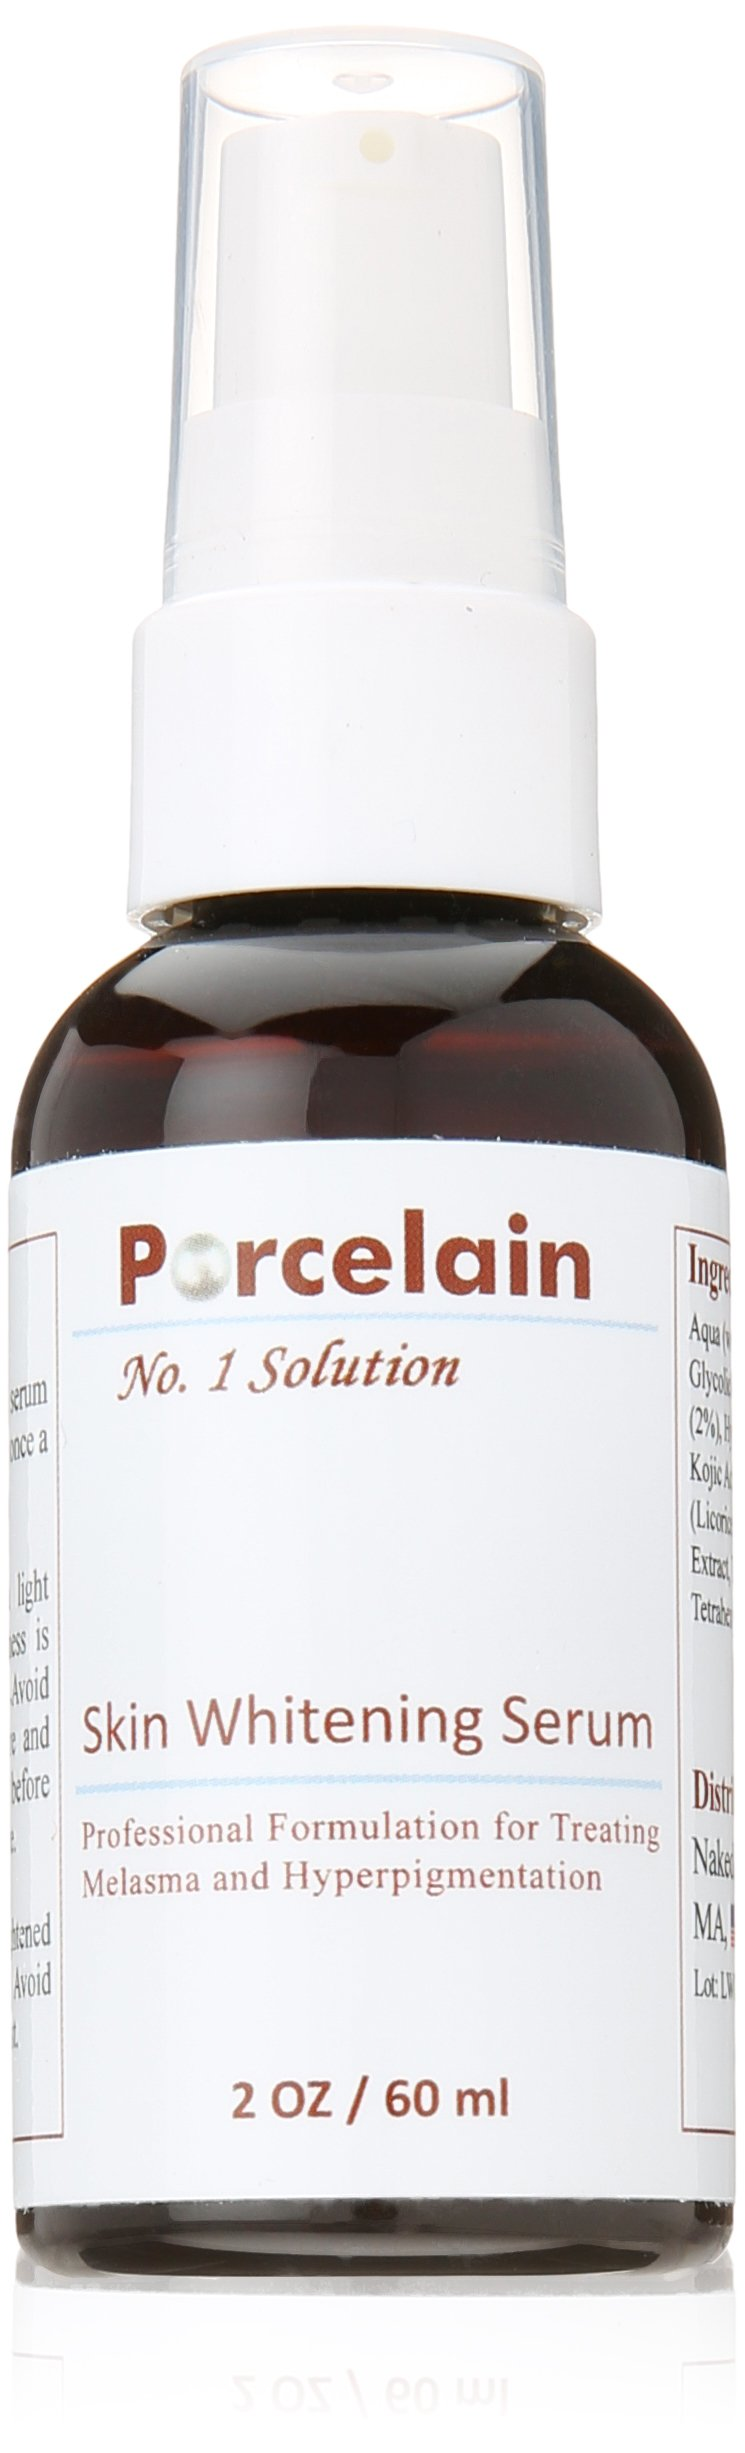 Procelain Skin Whitening Serum Hydroquinone Kojic Acid Glycolic Acid Vitamin C Licorice Mulberry Extract for Melasma, Hyperpigmentation 2oz